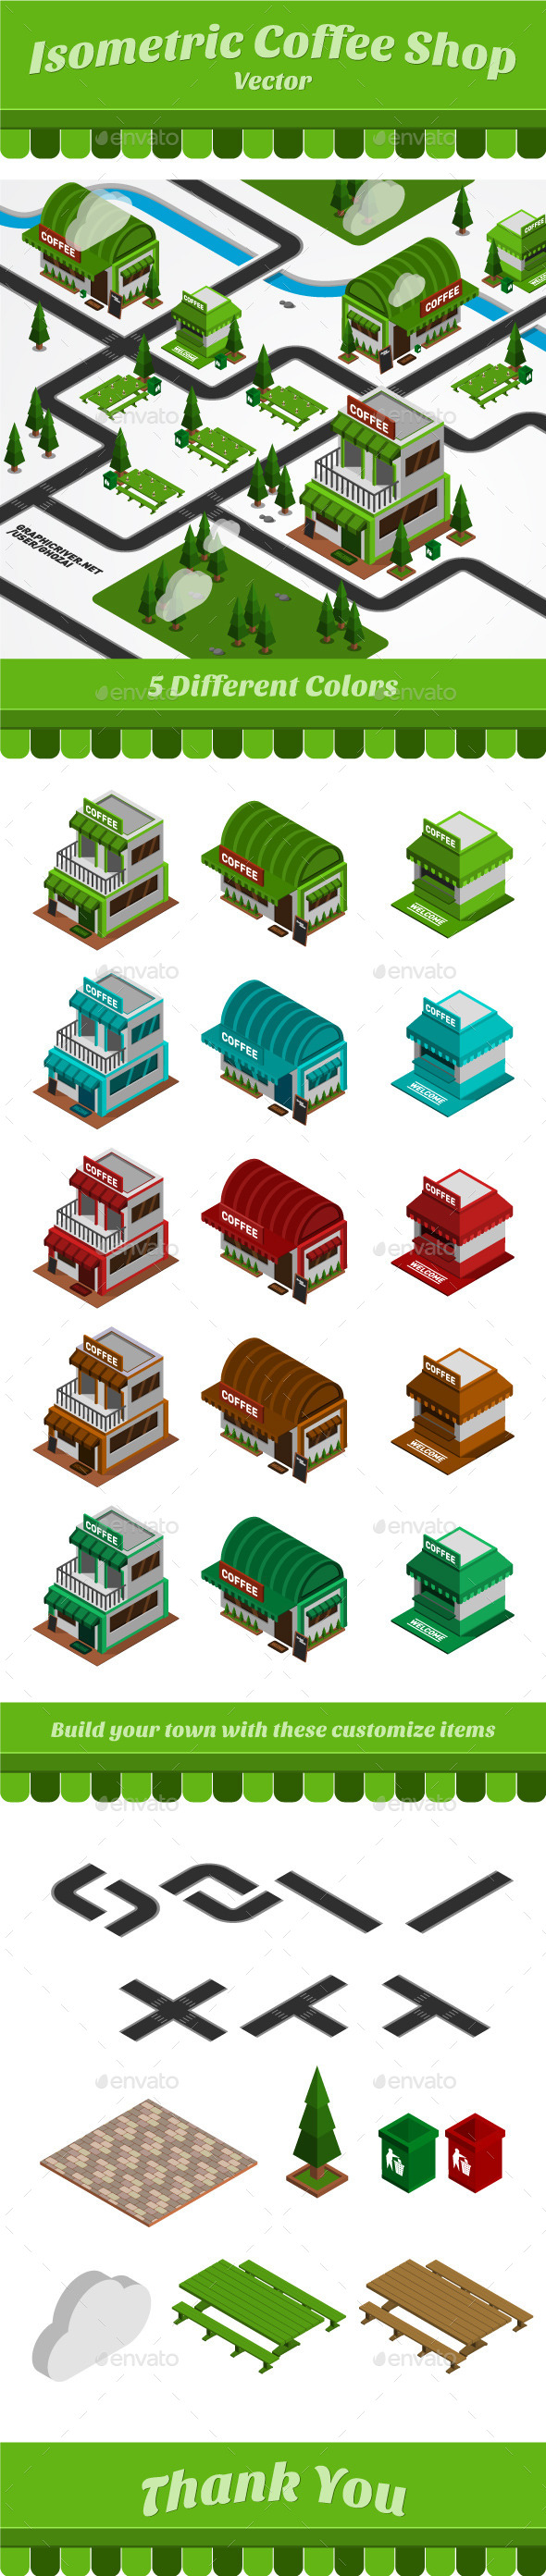 Isometric Coffee Shop - Buildings Objects